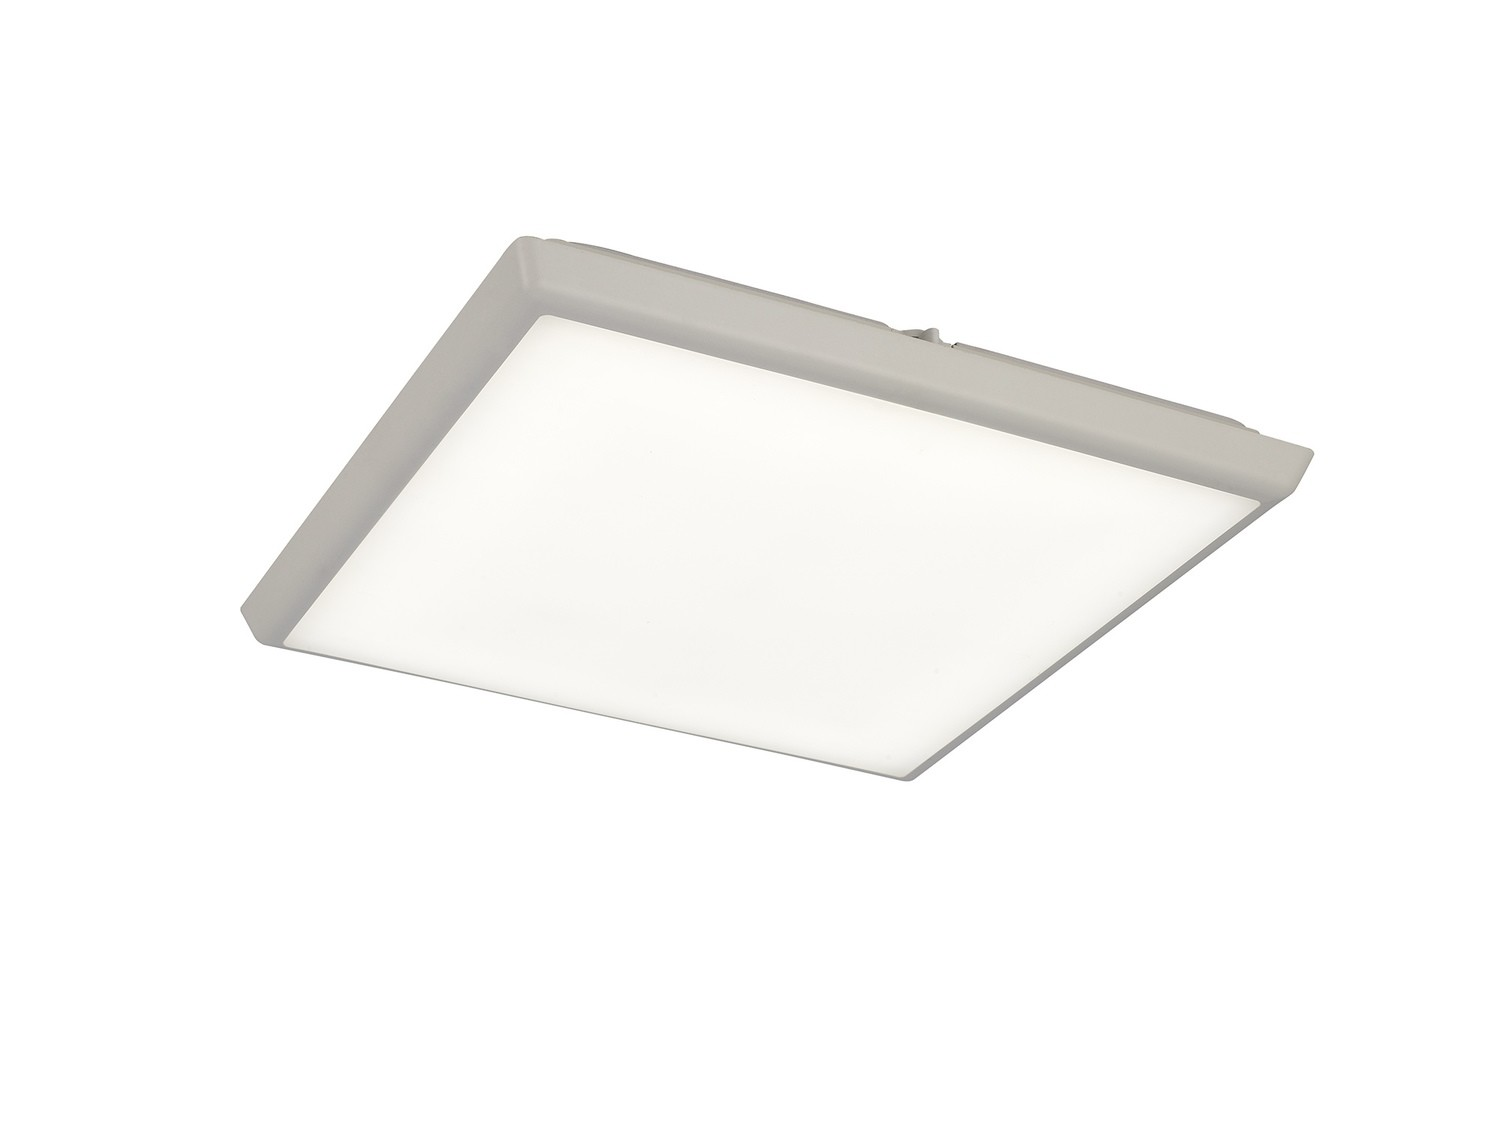 Aneto Ceiling, 40cm Square, 24W LED 4000K, 2500lm, IP65, White, 3yrs Warranty